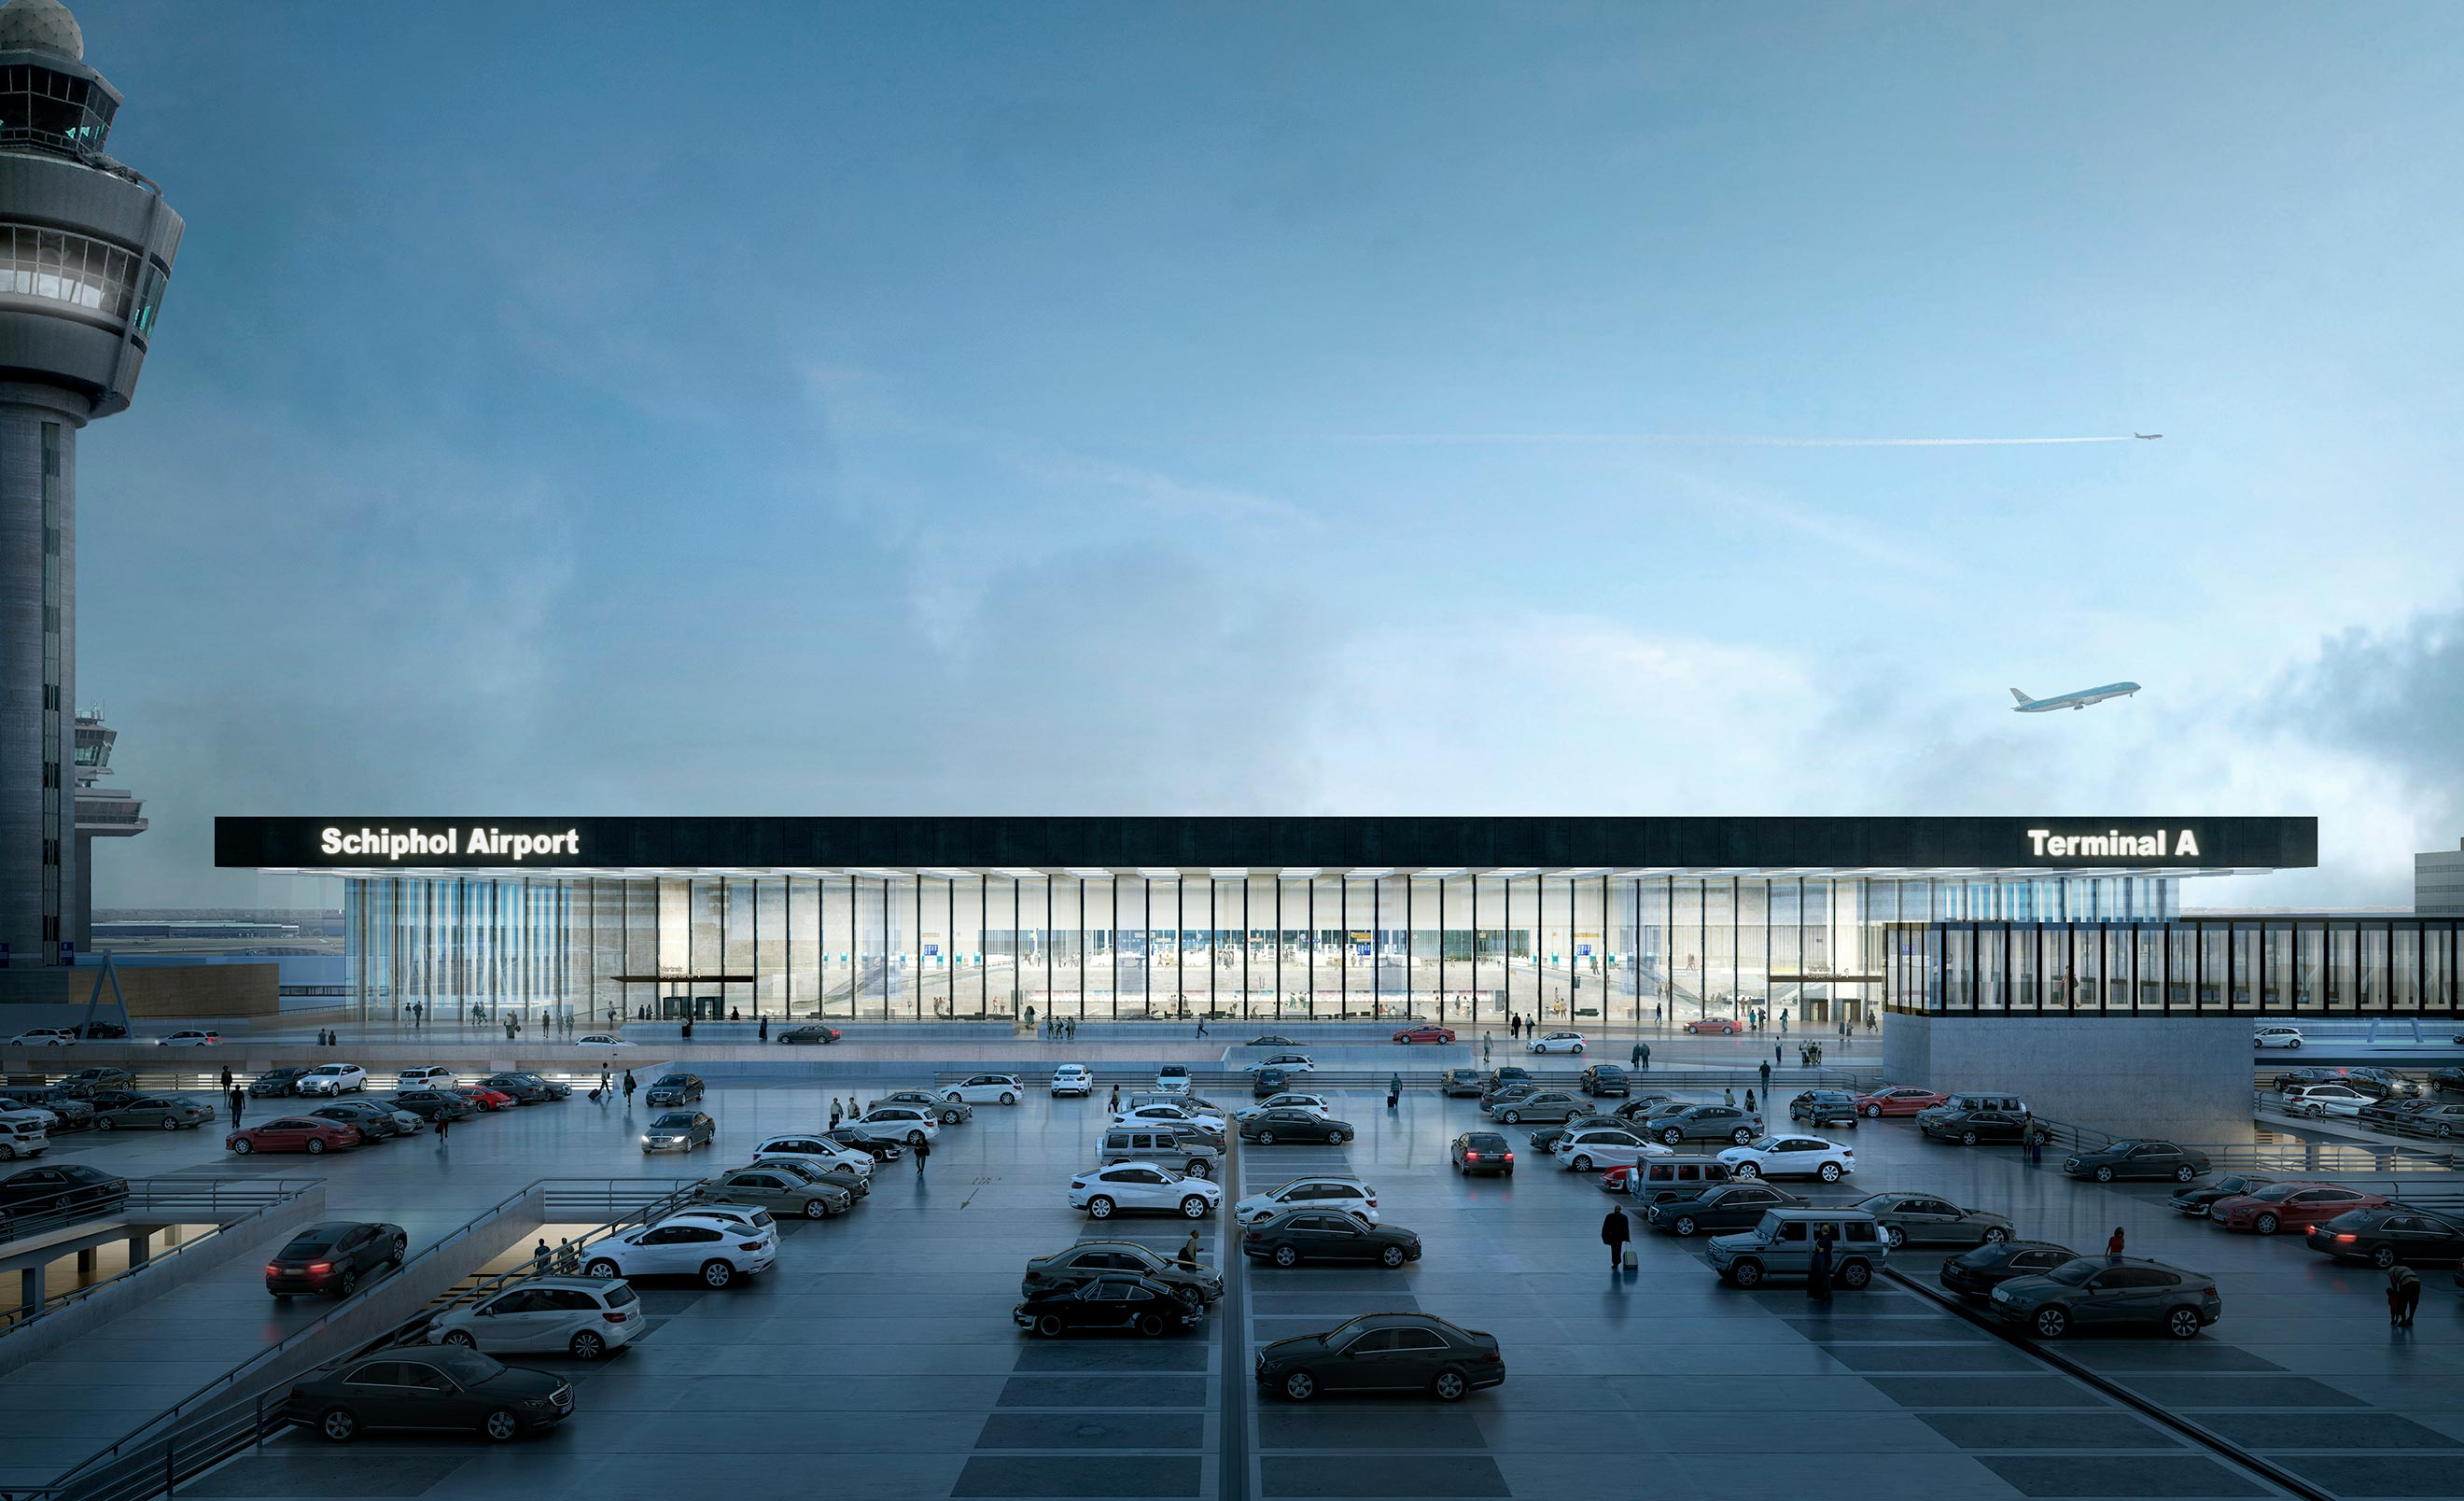 Estudio Lamela and KAAN Architecten have been awarded the International Architecture Award 2018 for the Schiphol Airport Terminal